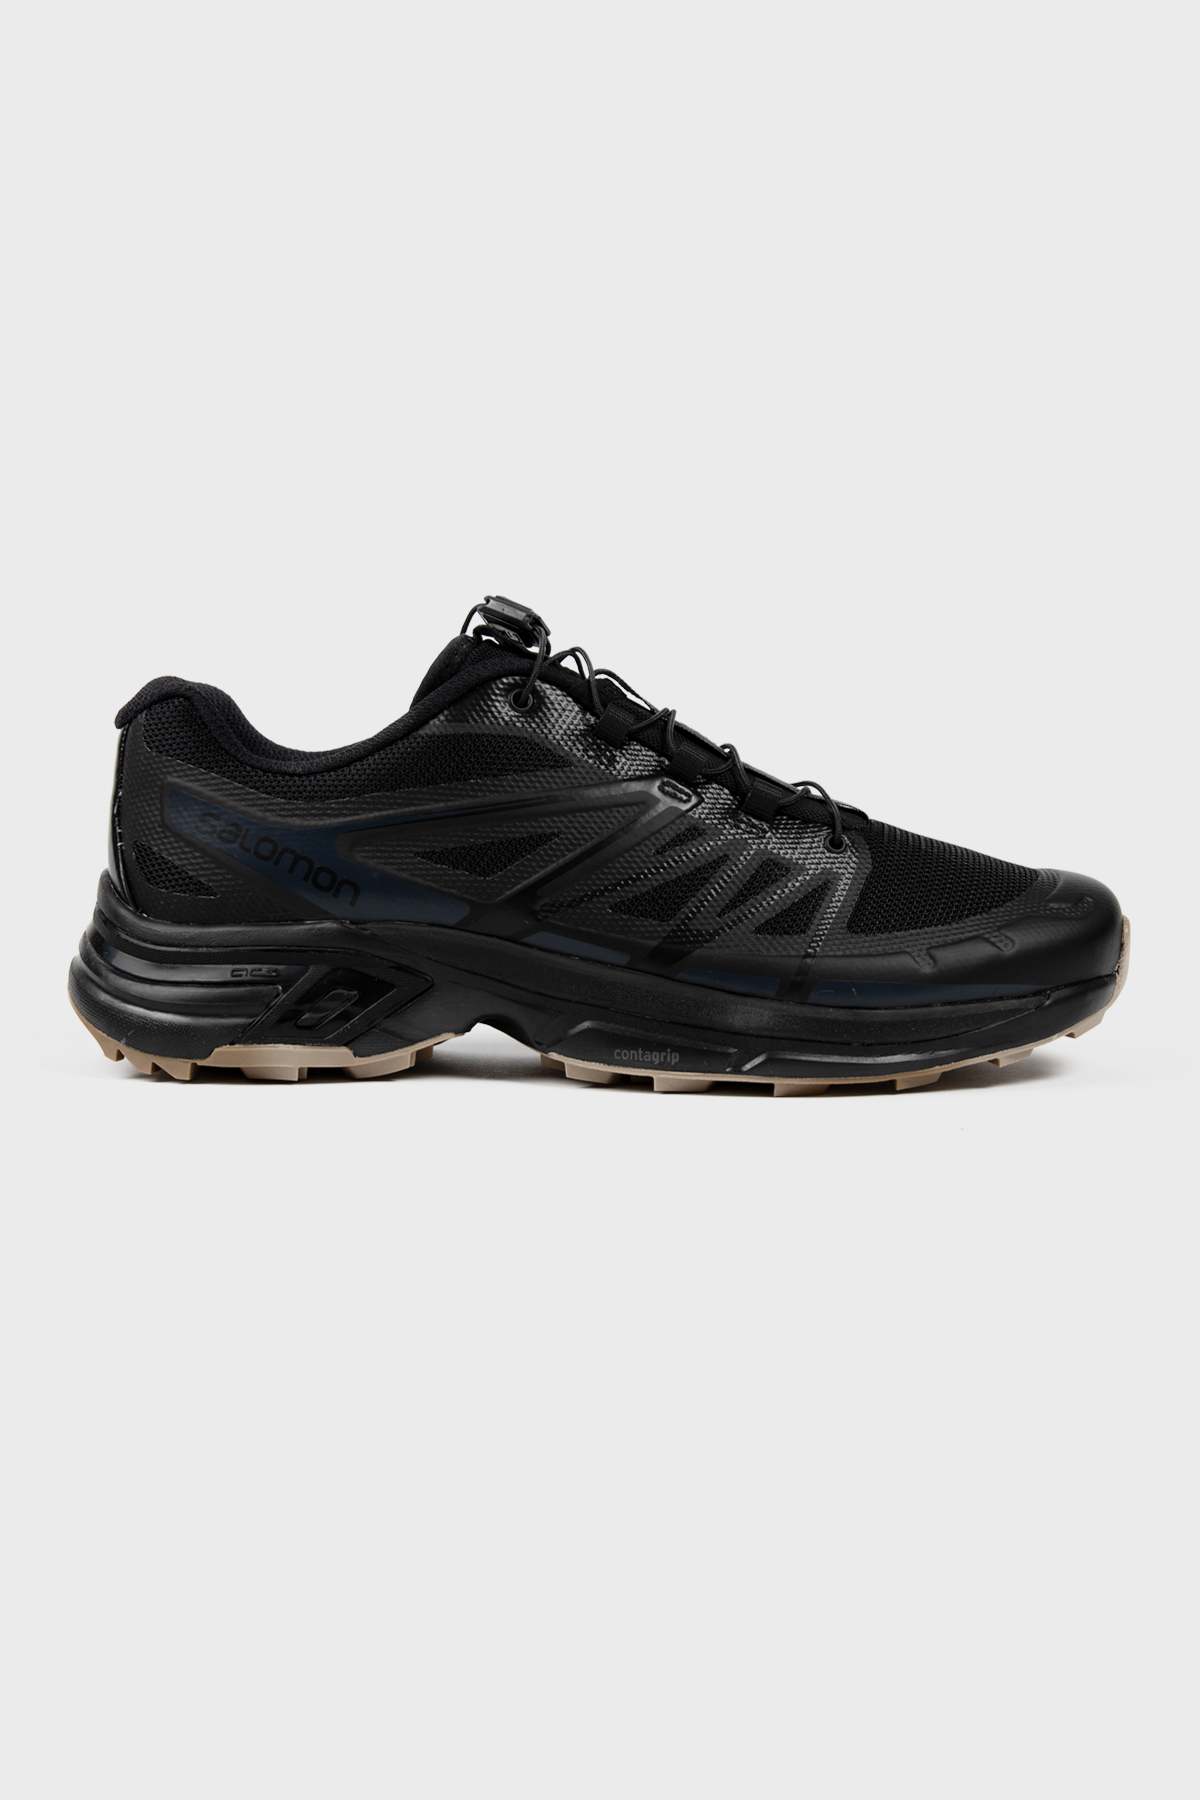 Salomon - XT wings 2 ADV - Blk blk Magnet